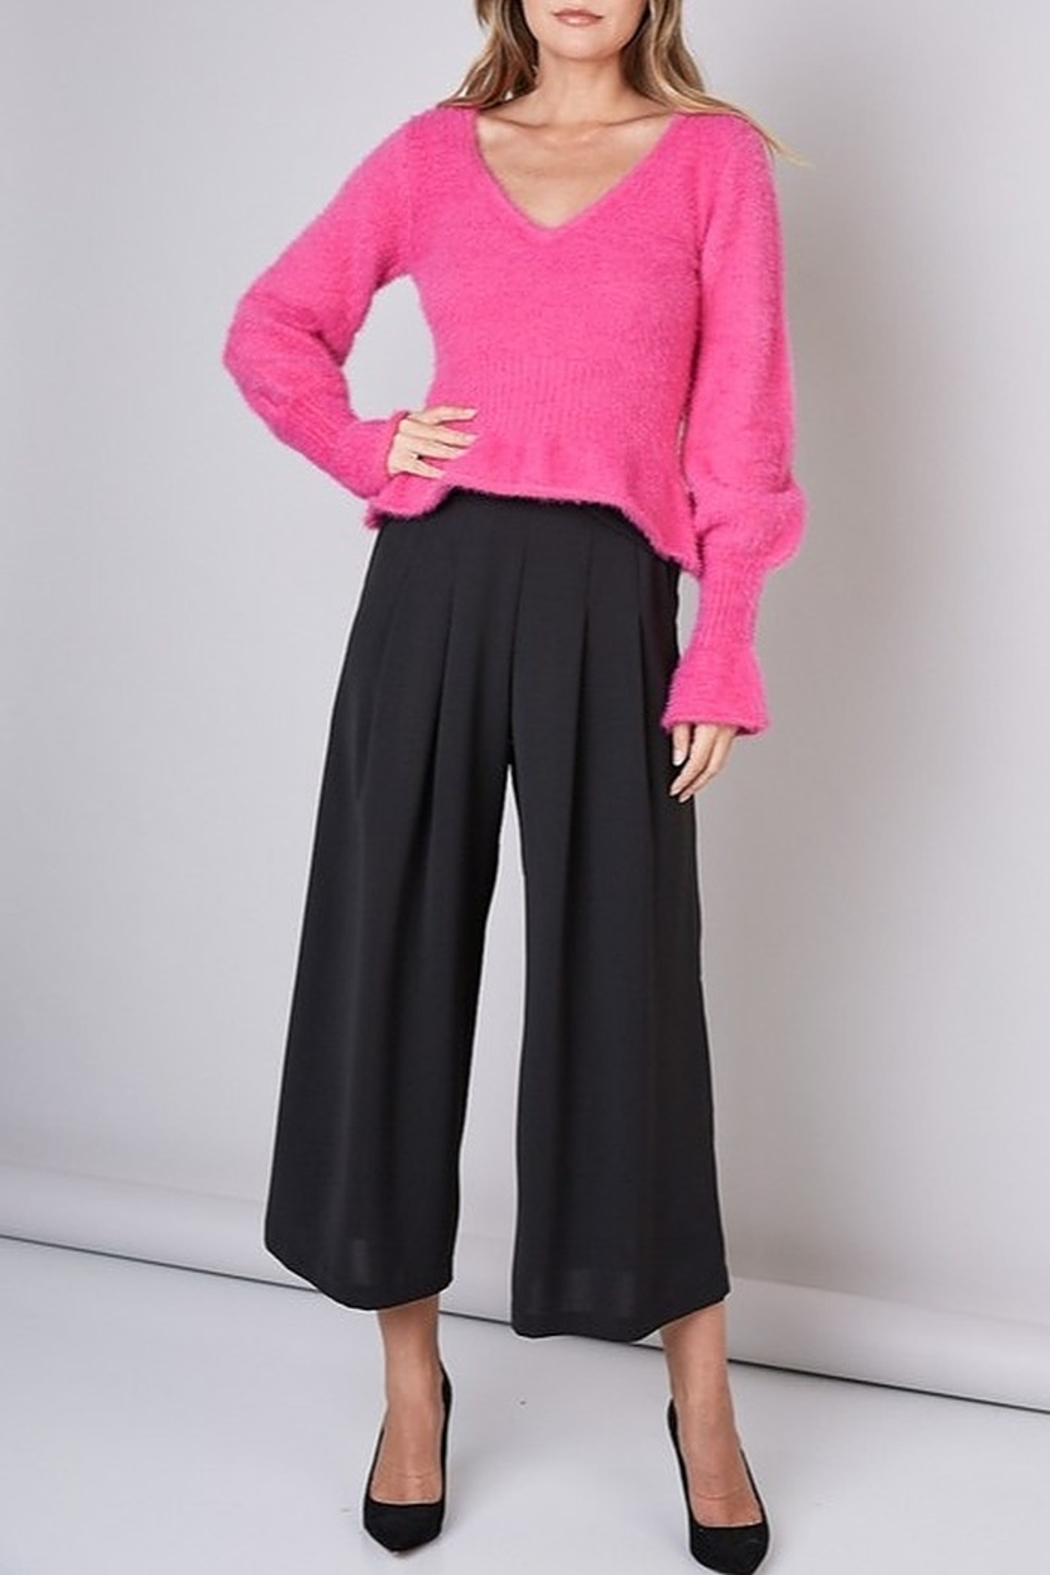 Do & Be Ruffle Hem Sweater - Side Cropped Image